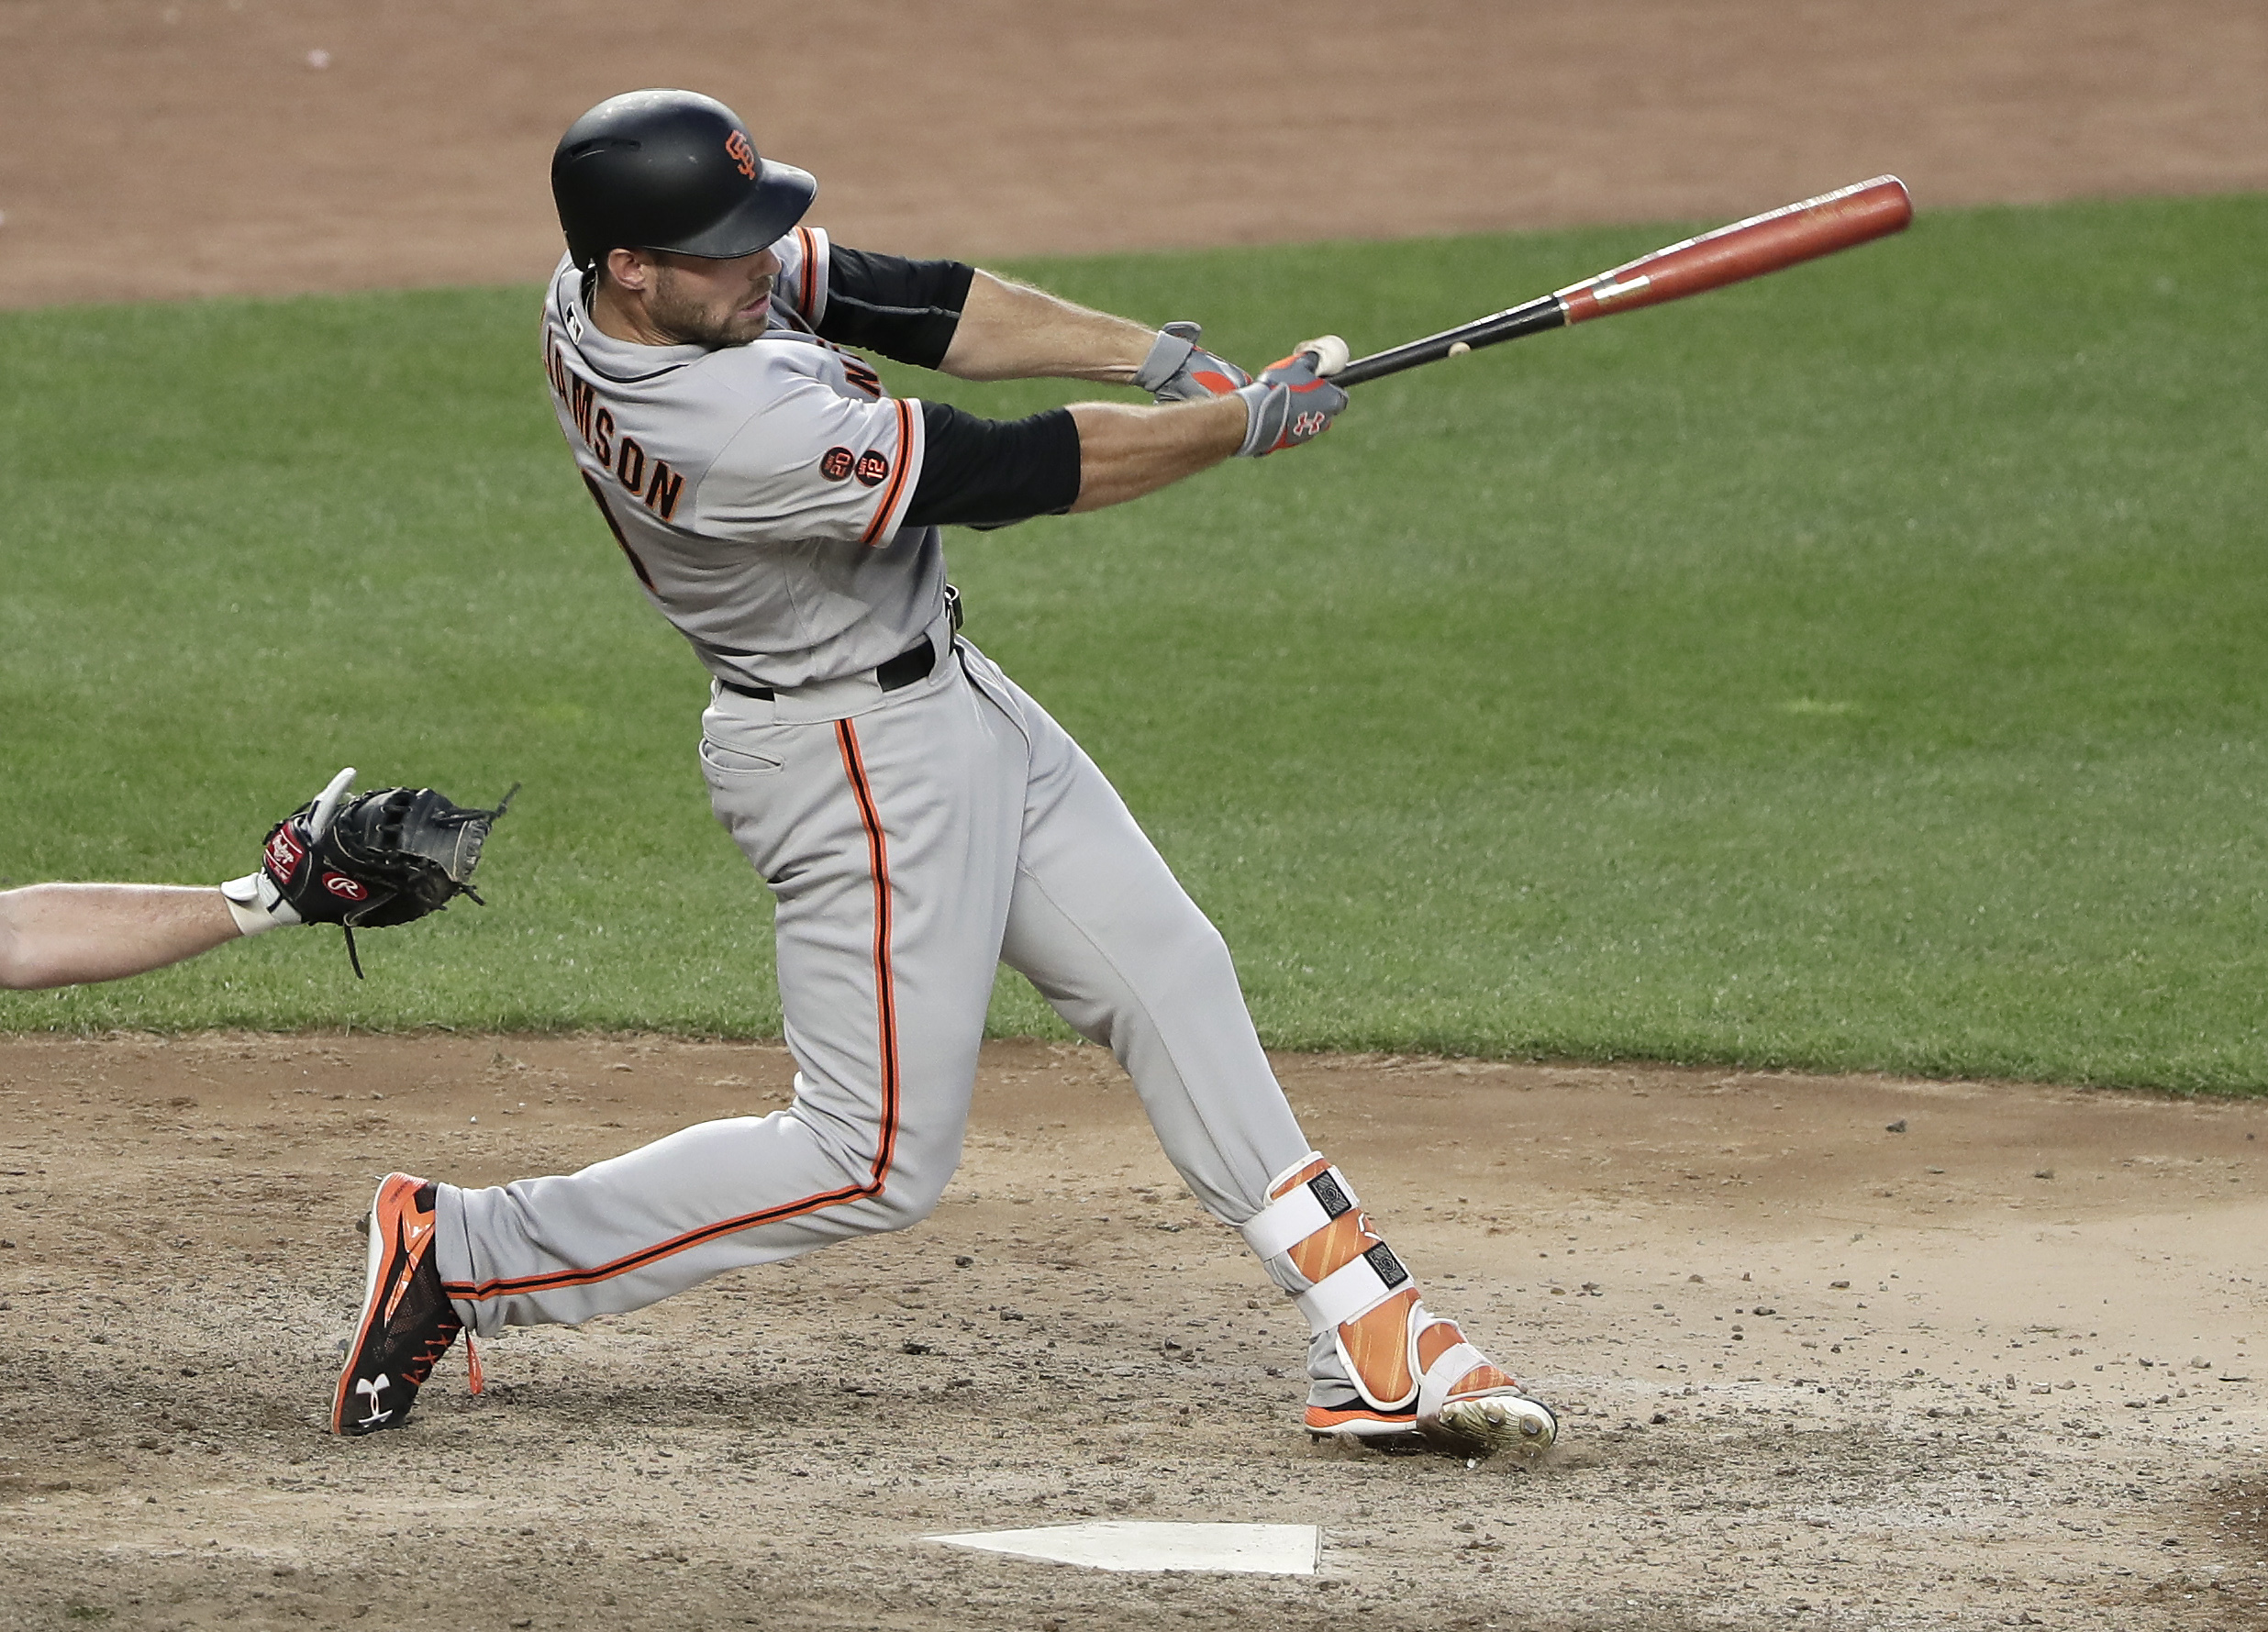 San Francisco Giants' Mac Williamson connects for an RBI-base hit against the New York Yankees during the twelfth inning of a baseball game, Saturday, July 23, 2016, in New York. Giants' Trevor Brown scored on the play. (AP Photo/Julie Jacobson)